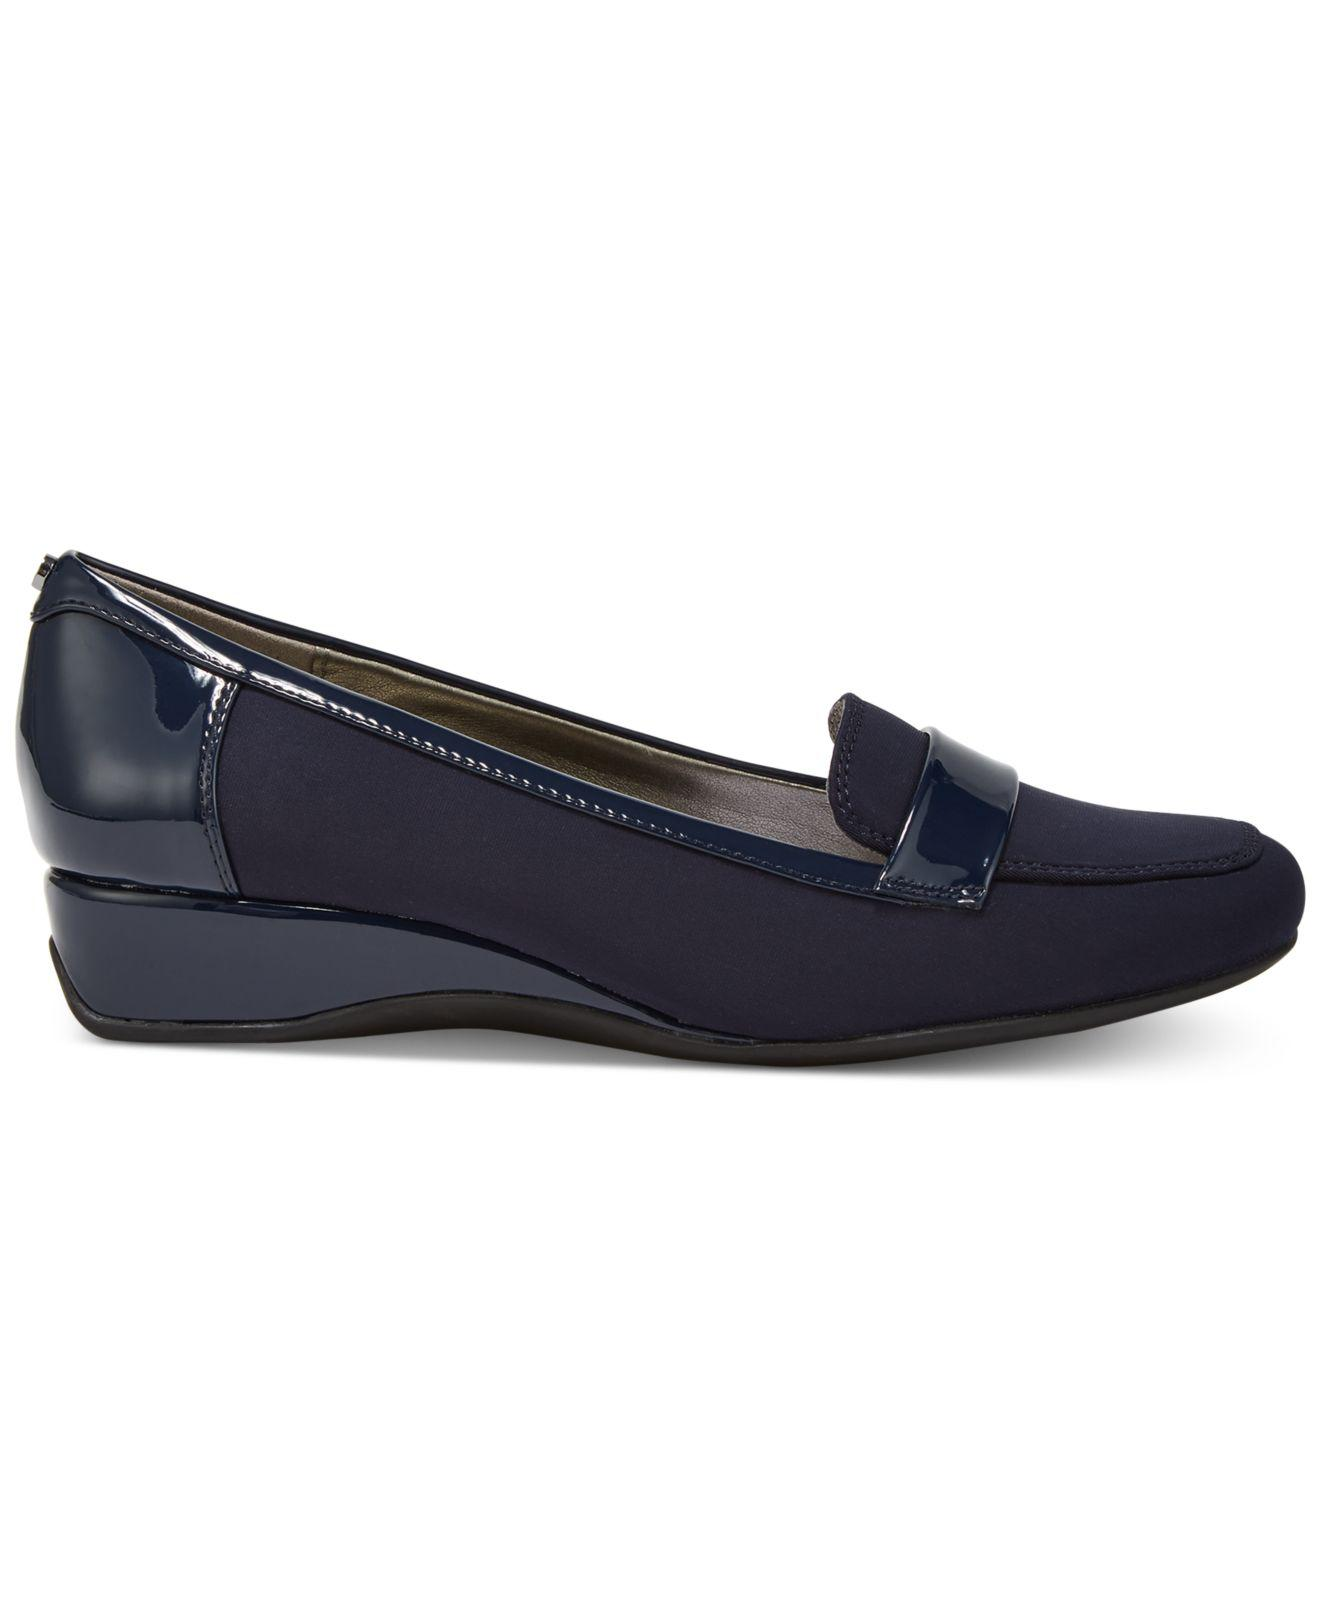 22478eee55ad Lyst - Bandolino Latera Wedge Loafer Flats in Blue